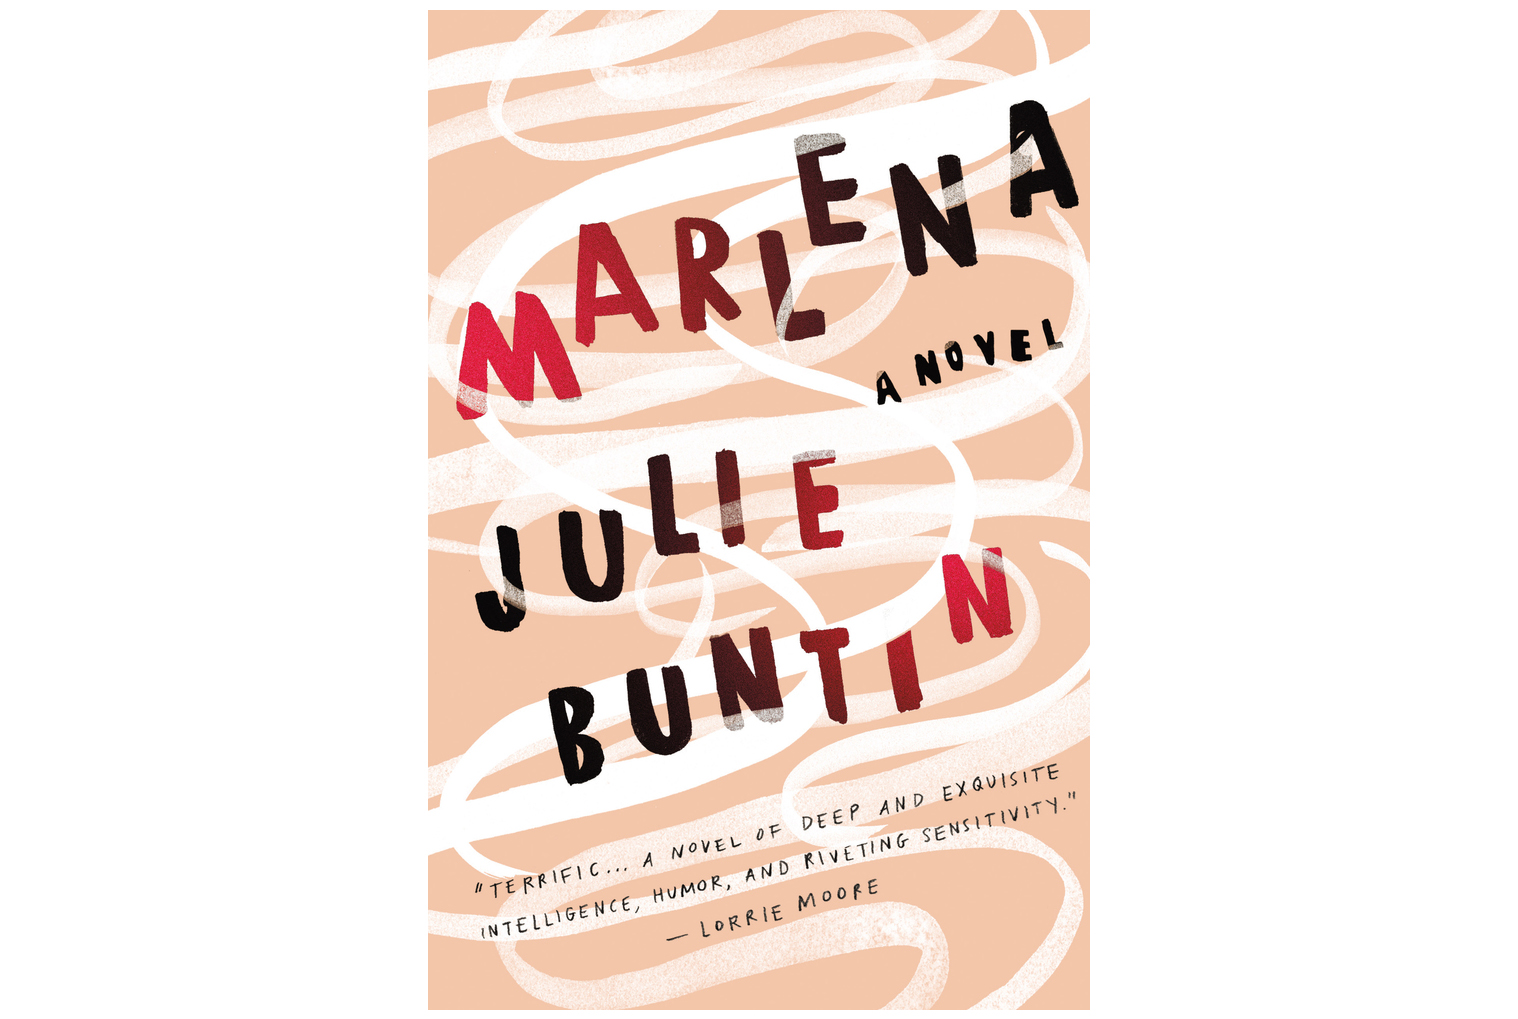 Marlena, by Julie Buntin